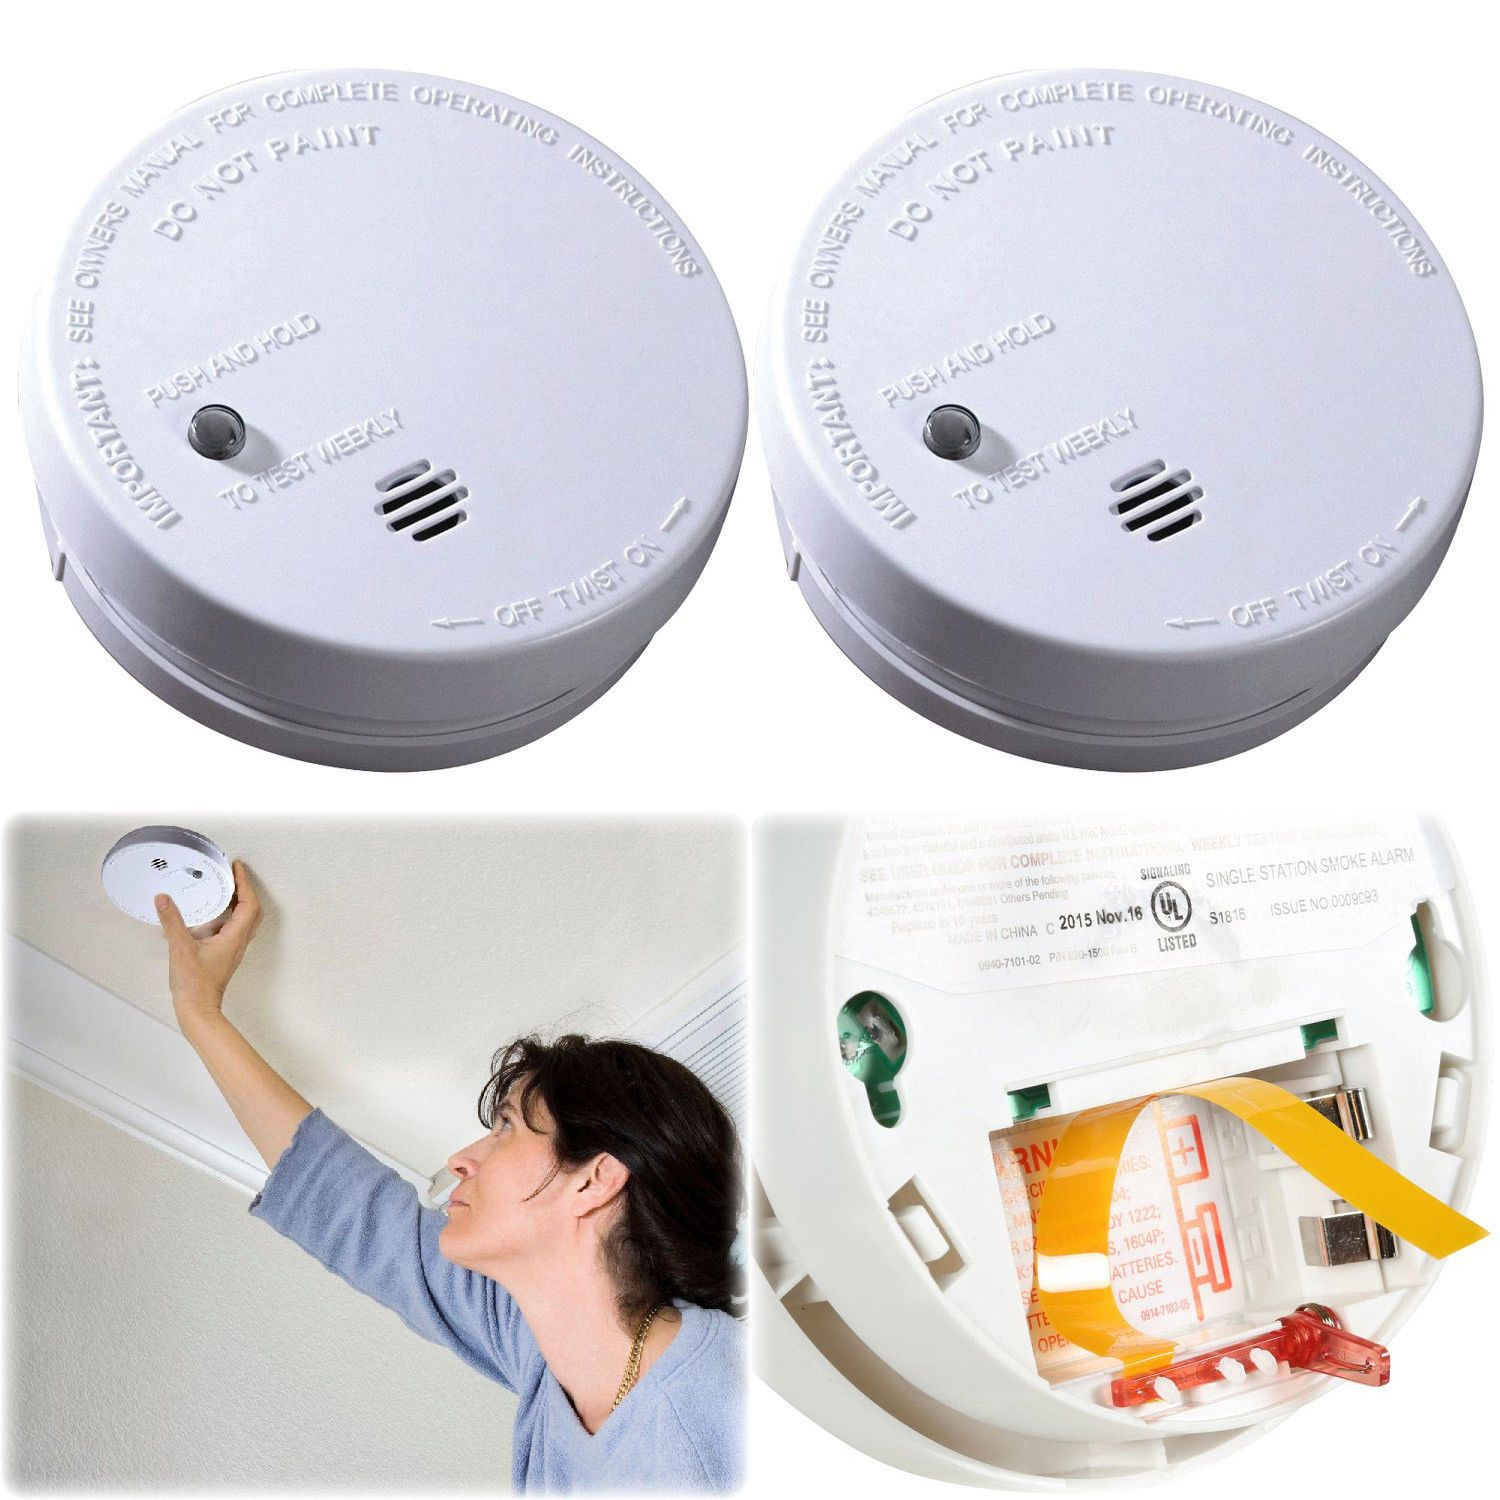 Smoke Alarm Smoke Alarm Ideas Smokealarm Firealarm Kidde 10 Year Kitchen Sealed Lithium Battery Operated Smoke Alarm Smoke Alarms Fire Alarm Smoke Detector